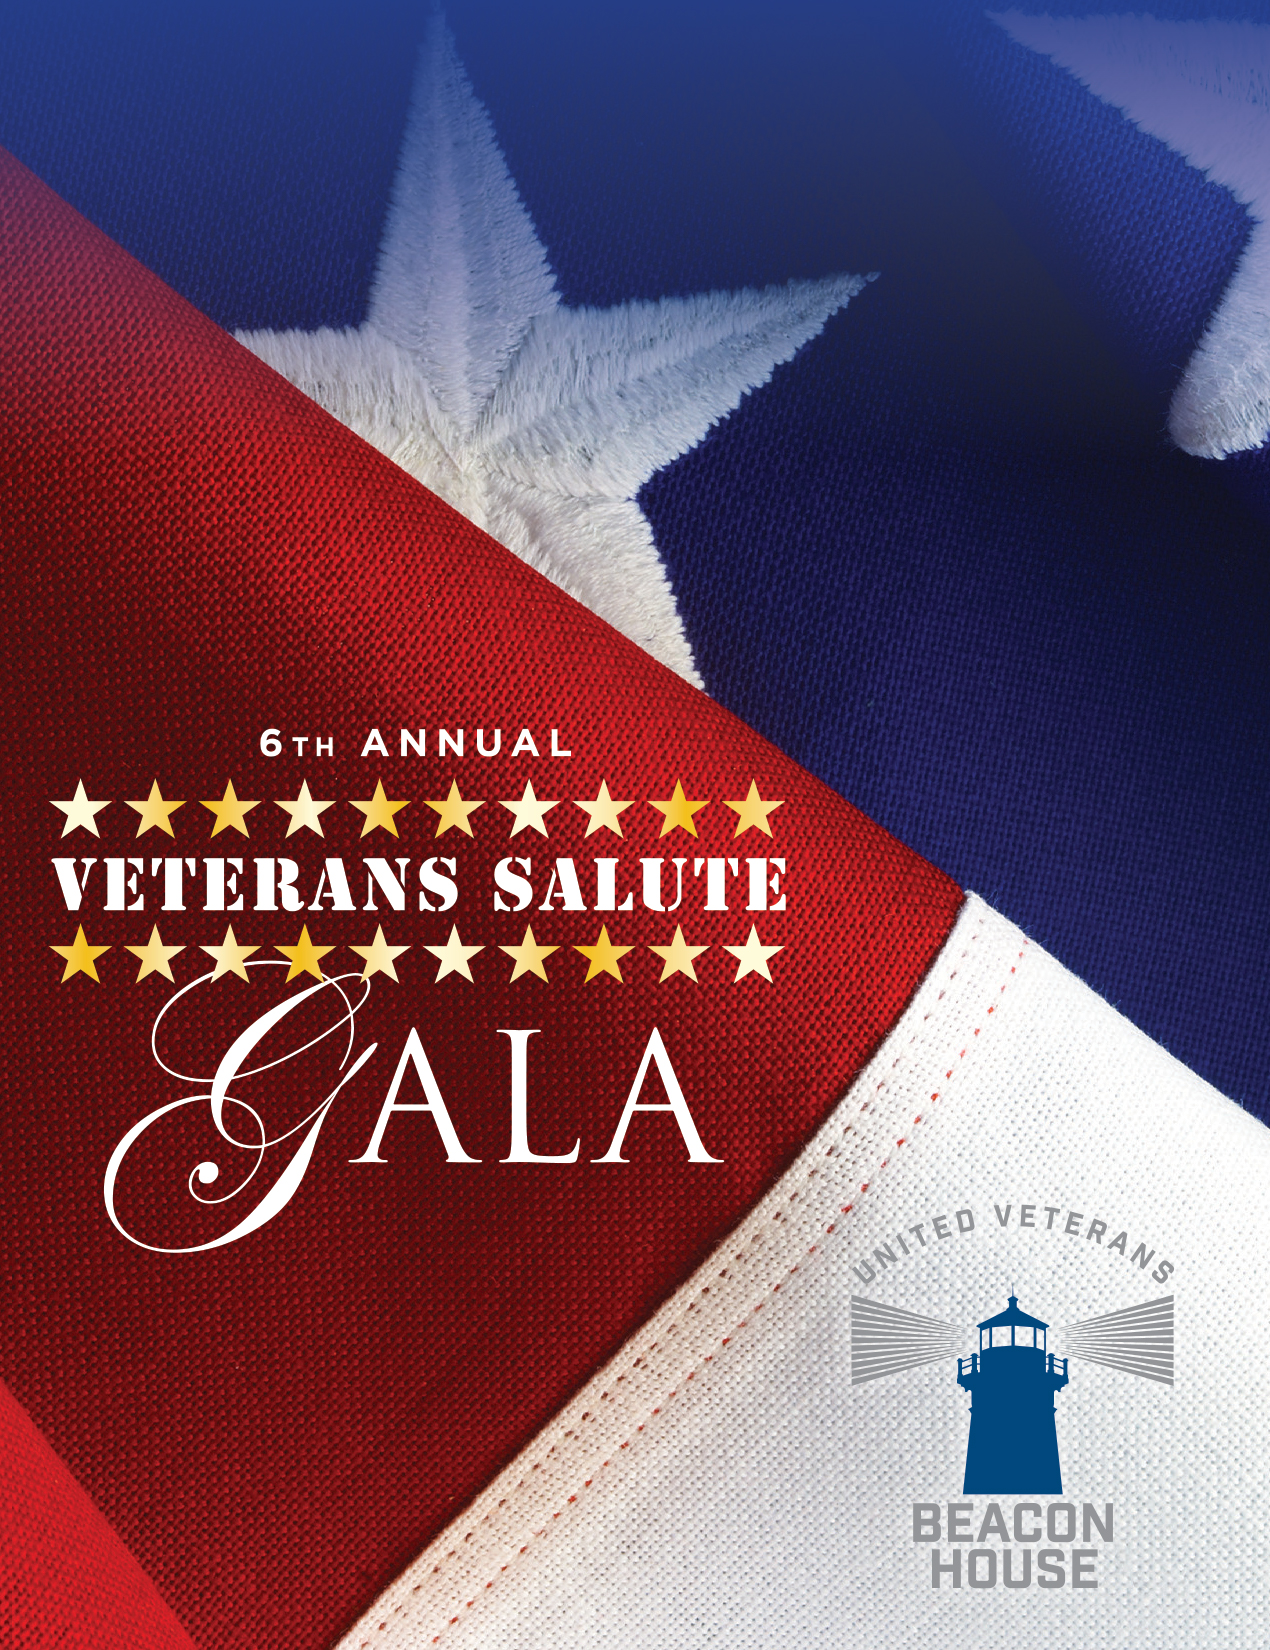 6th Annual Veterans Salute GALA